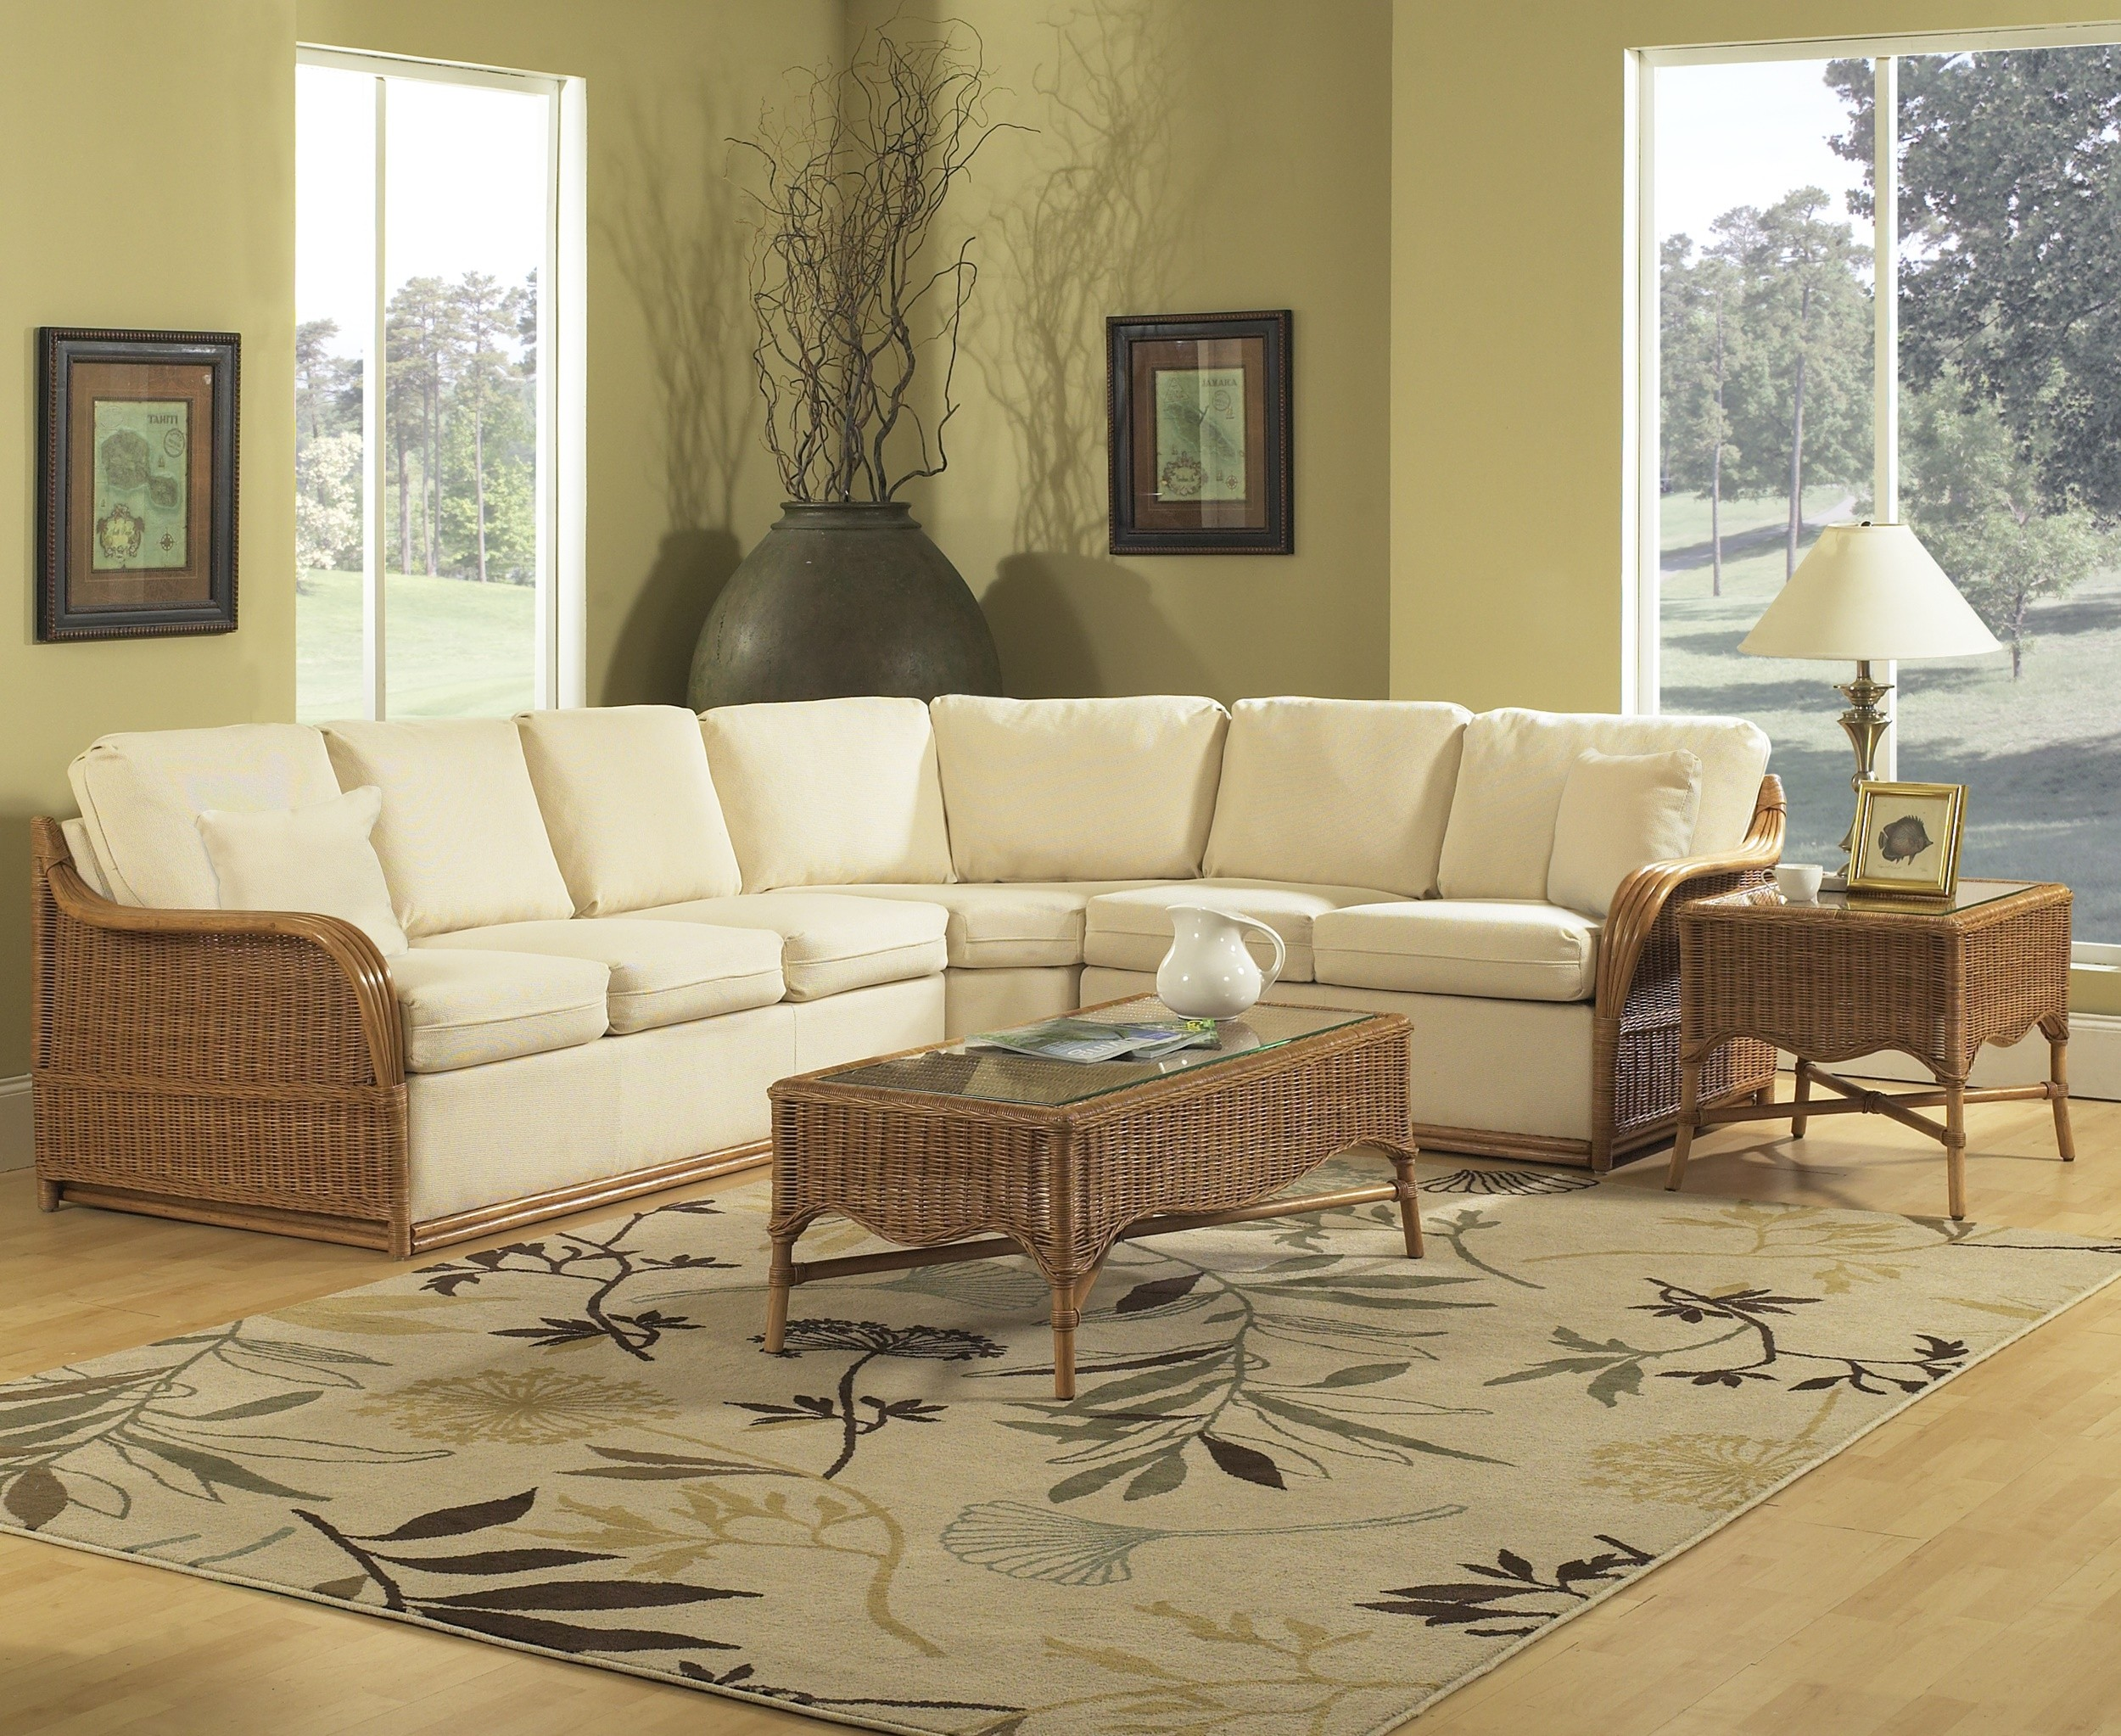 Outstanding Classic Rattan Bodega Bay Sectional Sofa Andrewgaddart Wooden Chair Designs For Living Room Andrewgaddartcom